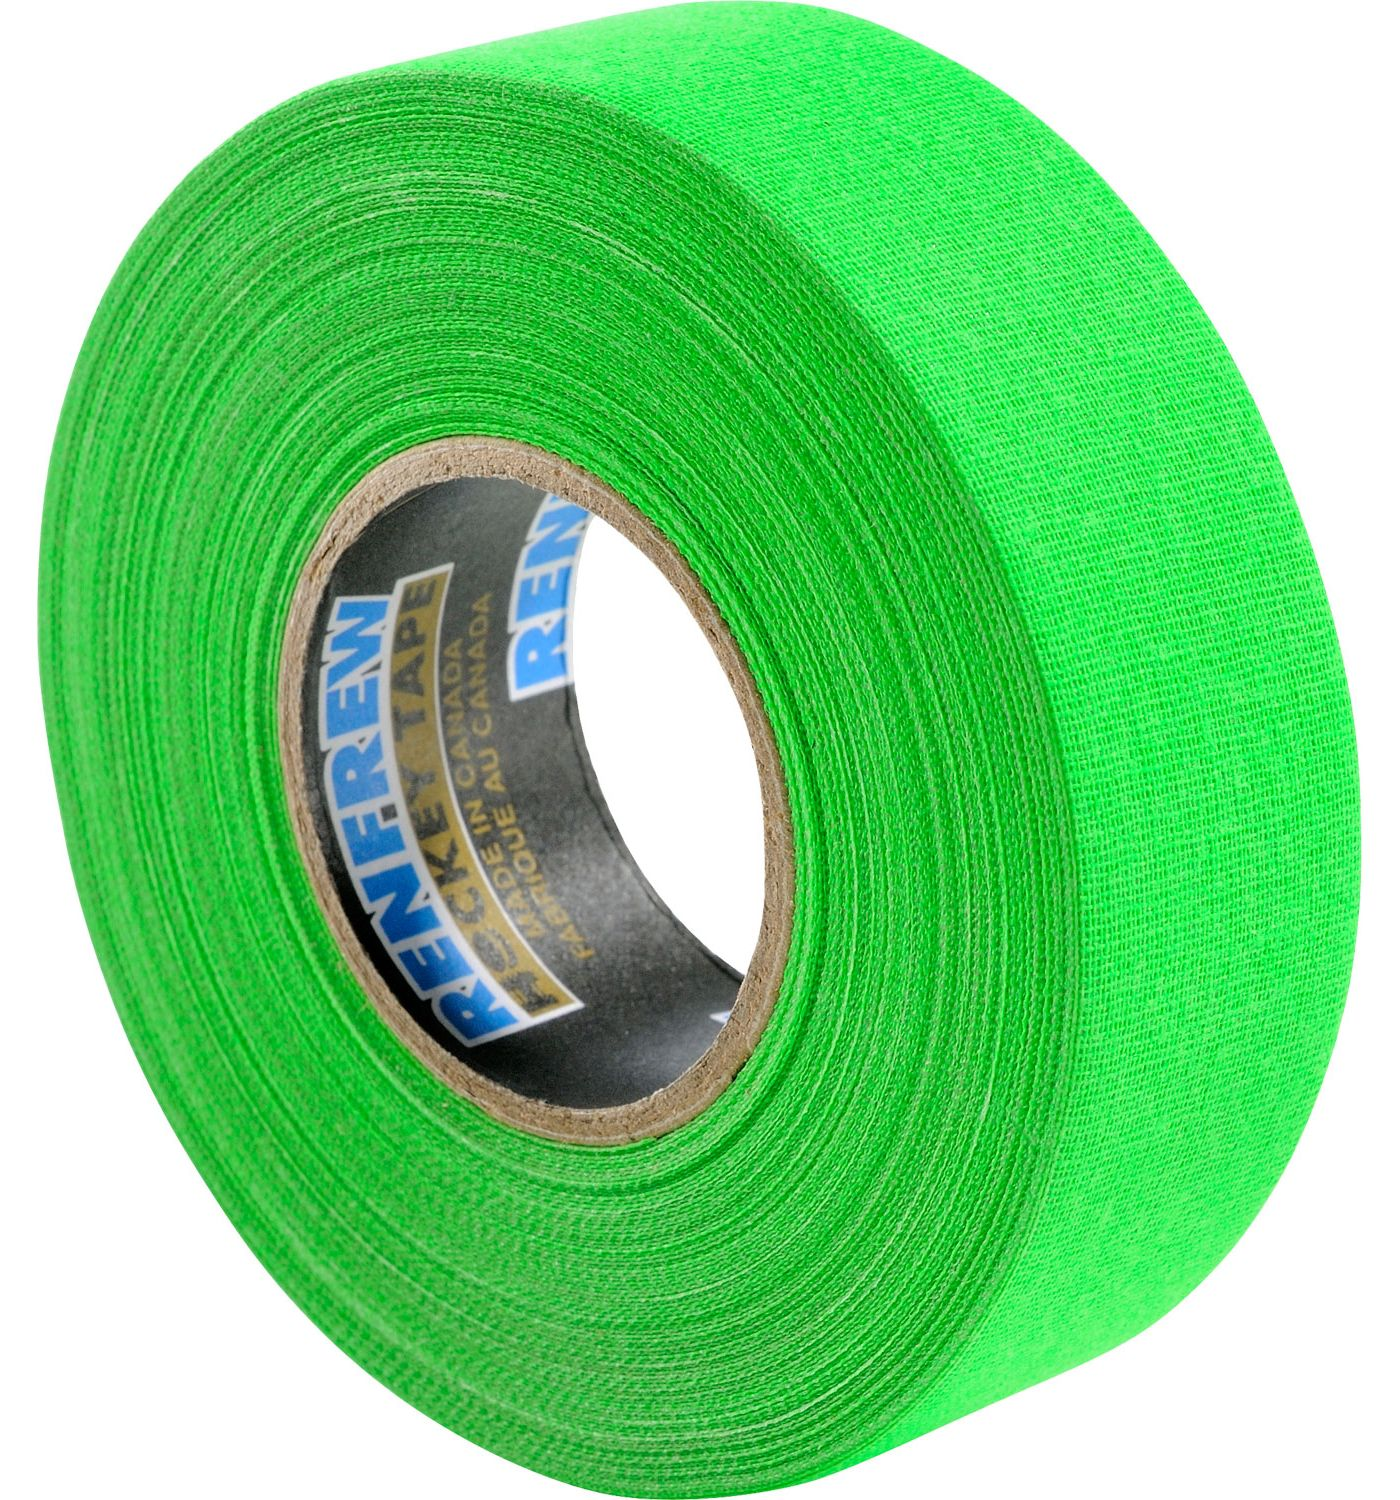 Renfrew Neon Hockey Tape